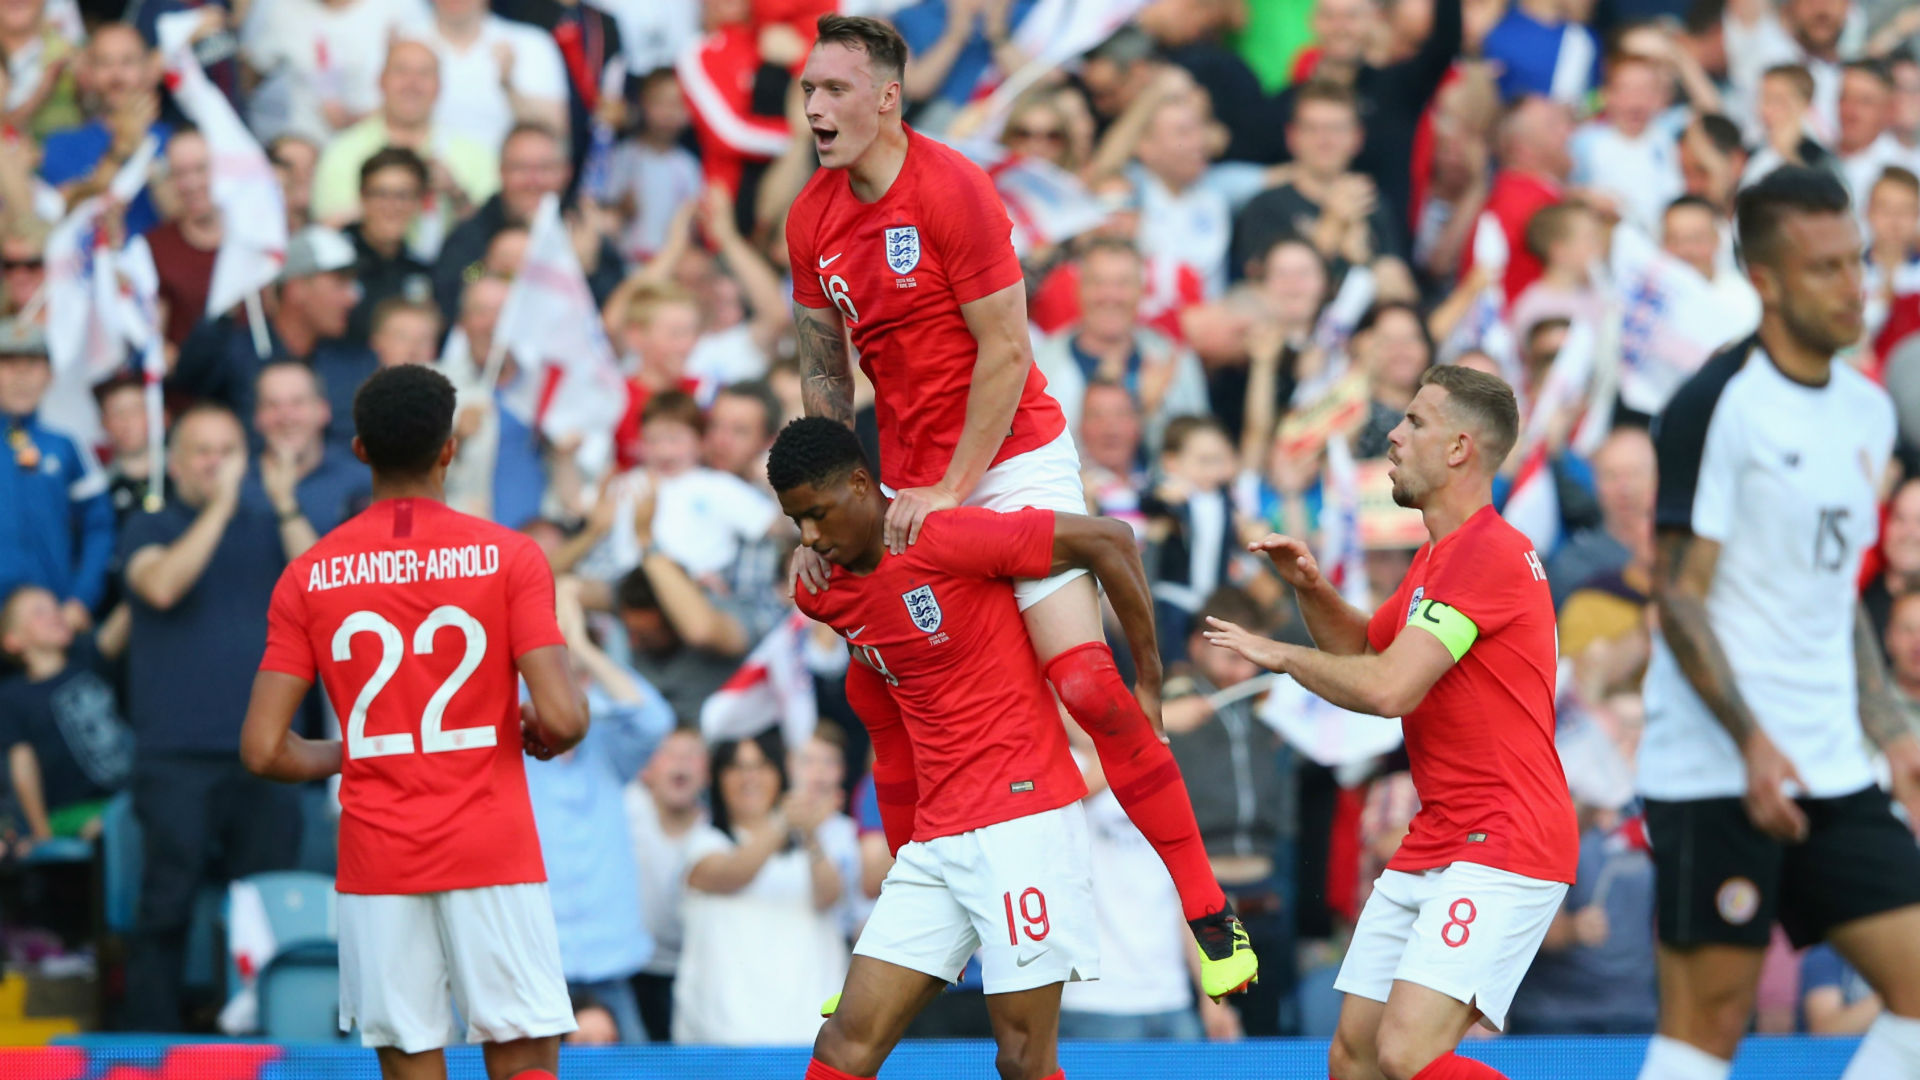 Marcus Rashford Phil Jones Jordan Henderson England Costa Rica international friendly 2018